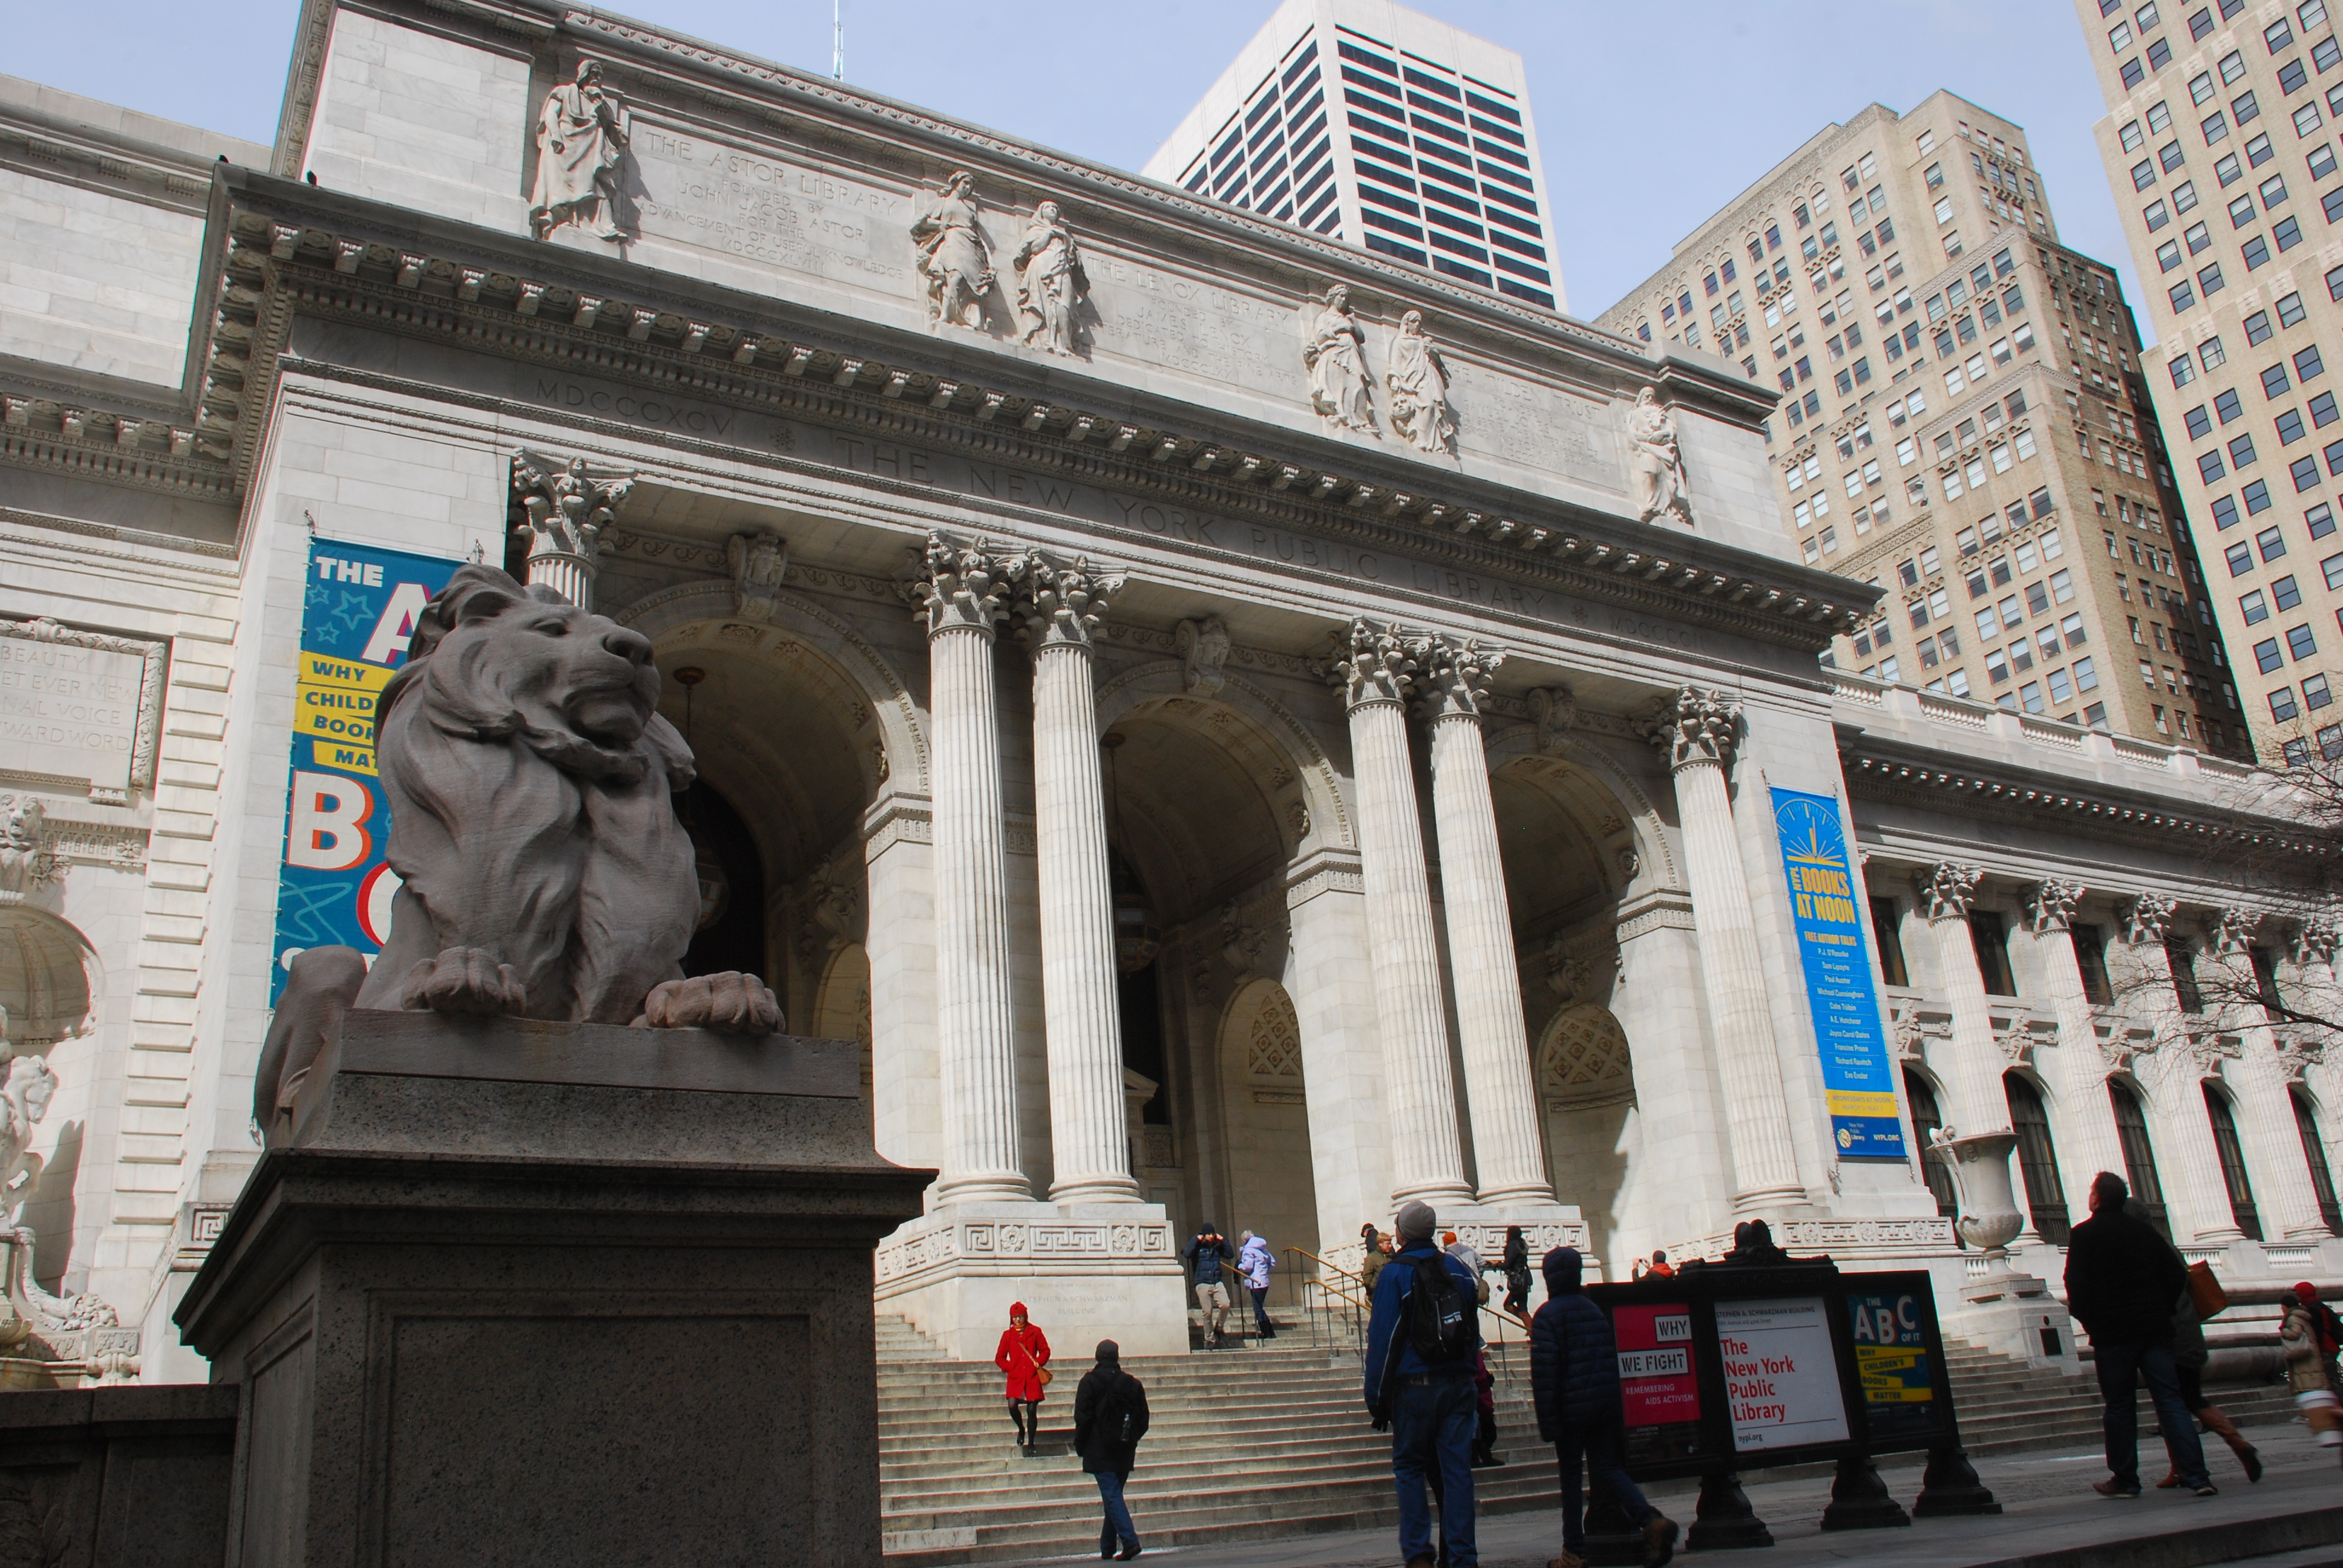 Library tourism – New York Public Library